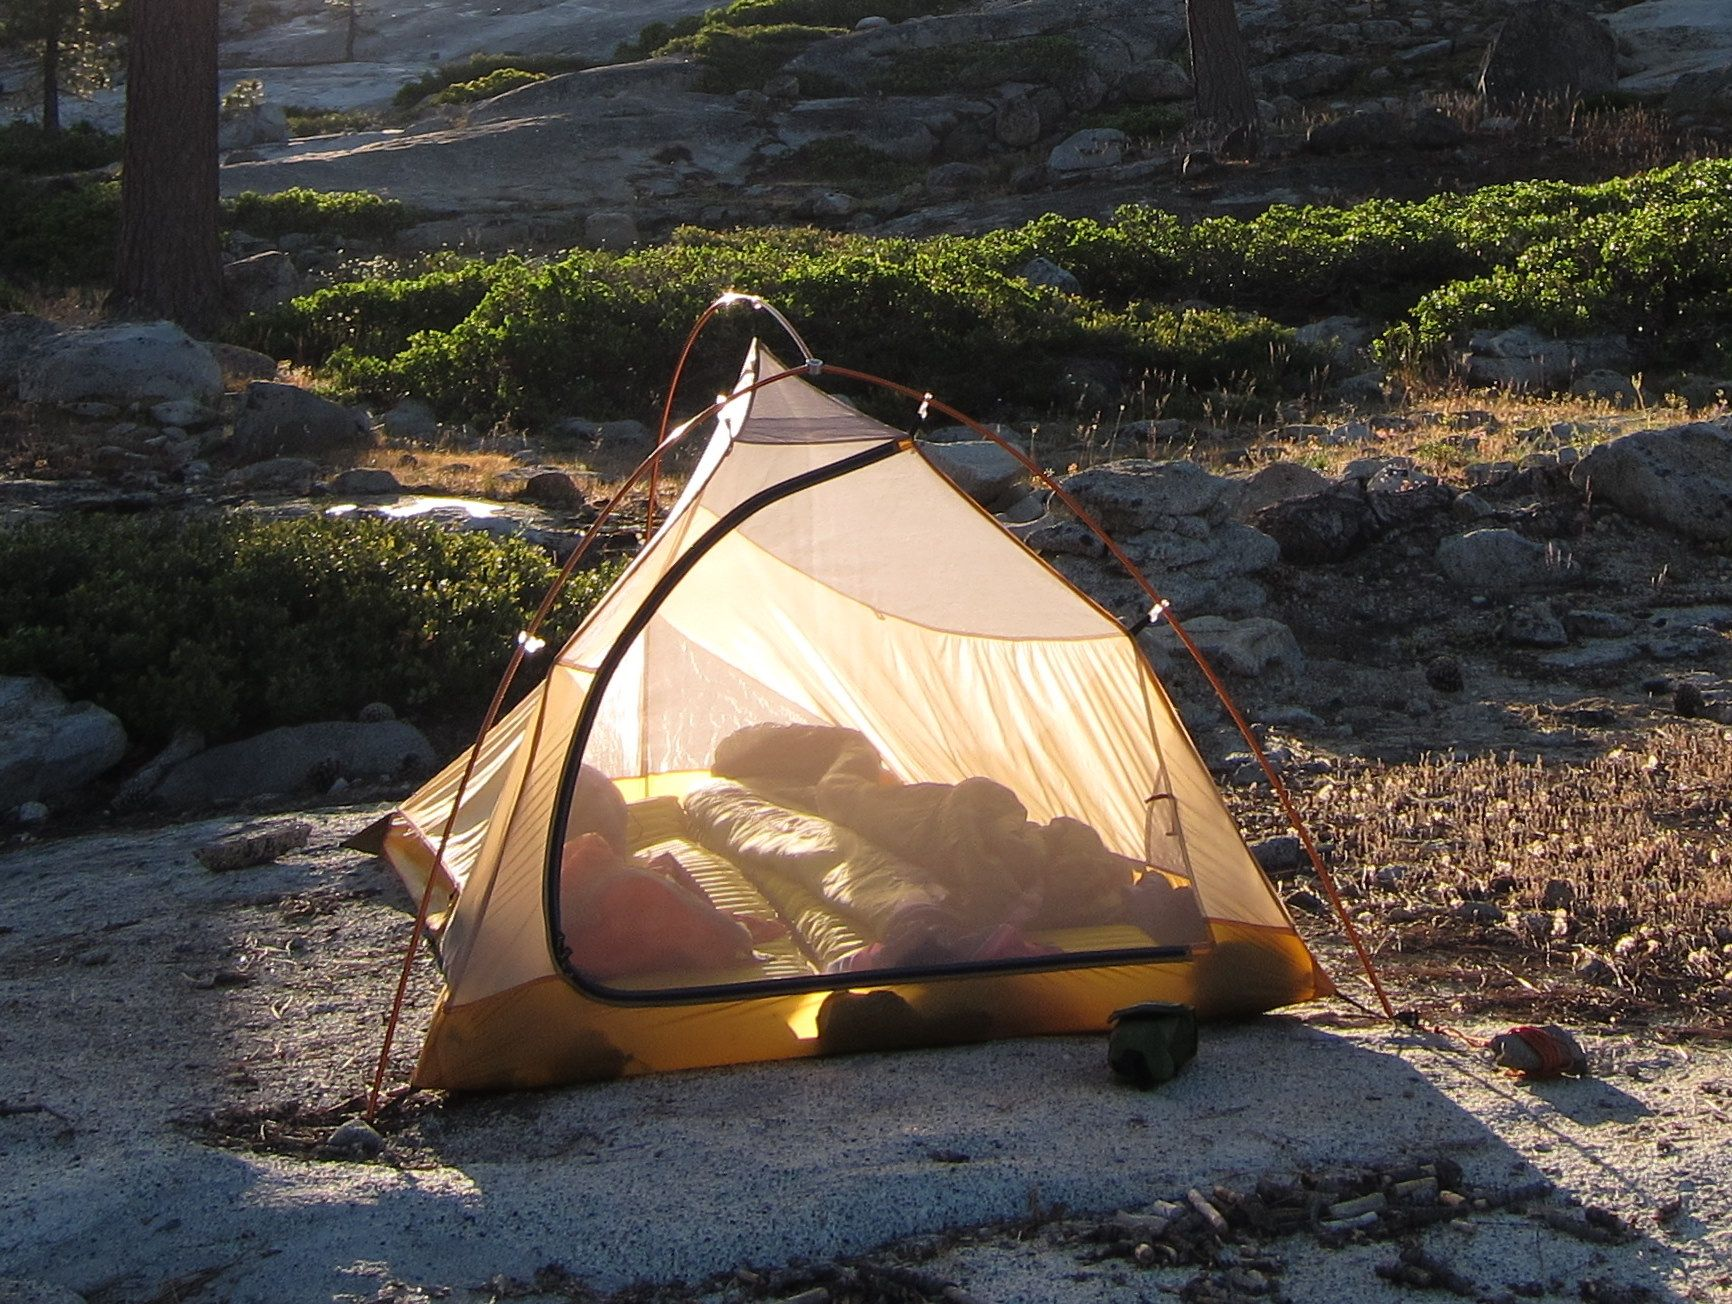 Camping Gear that Leaves No Trace | Camping supplies ...